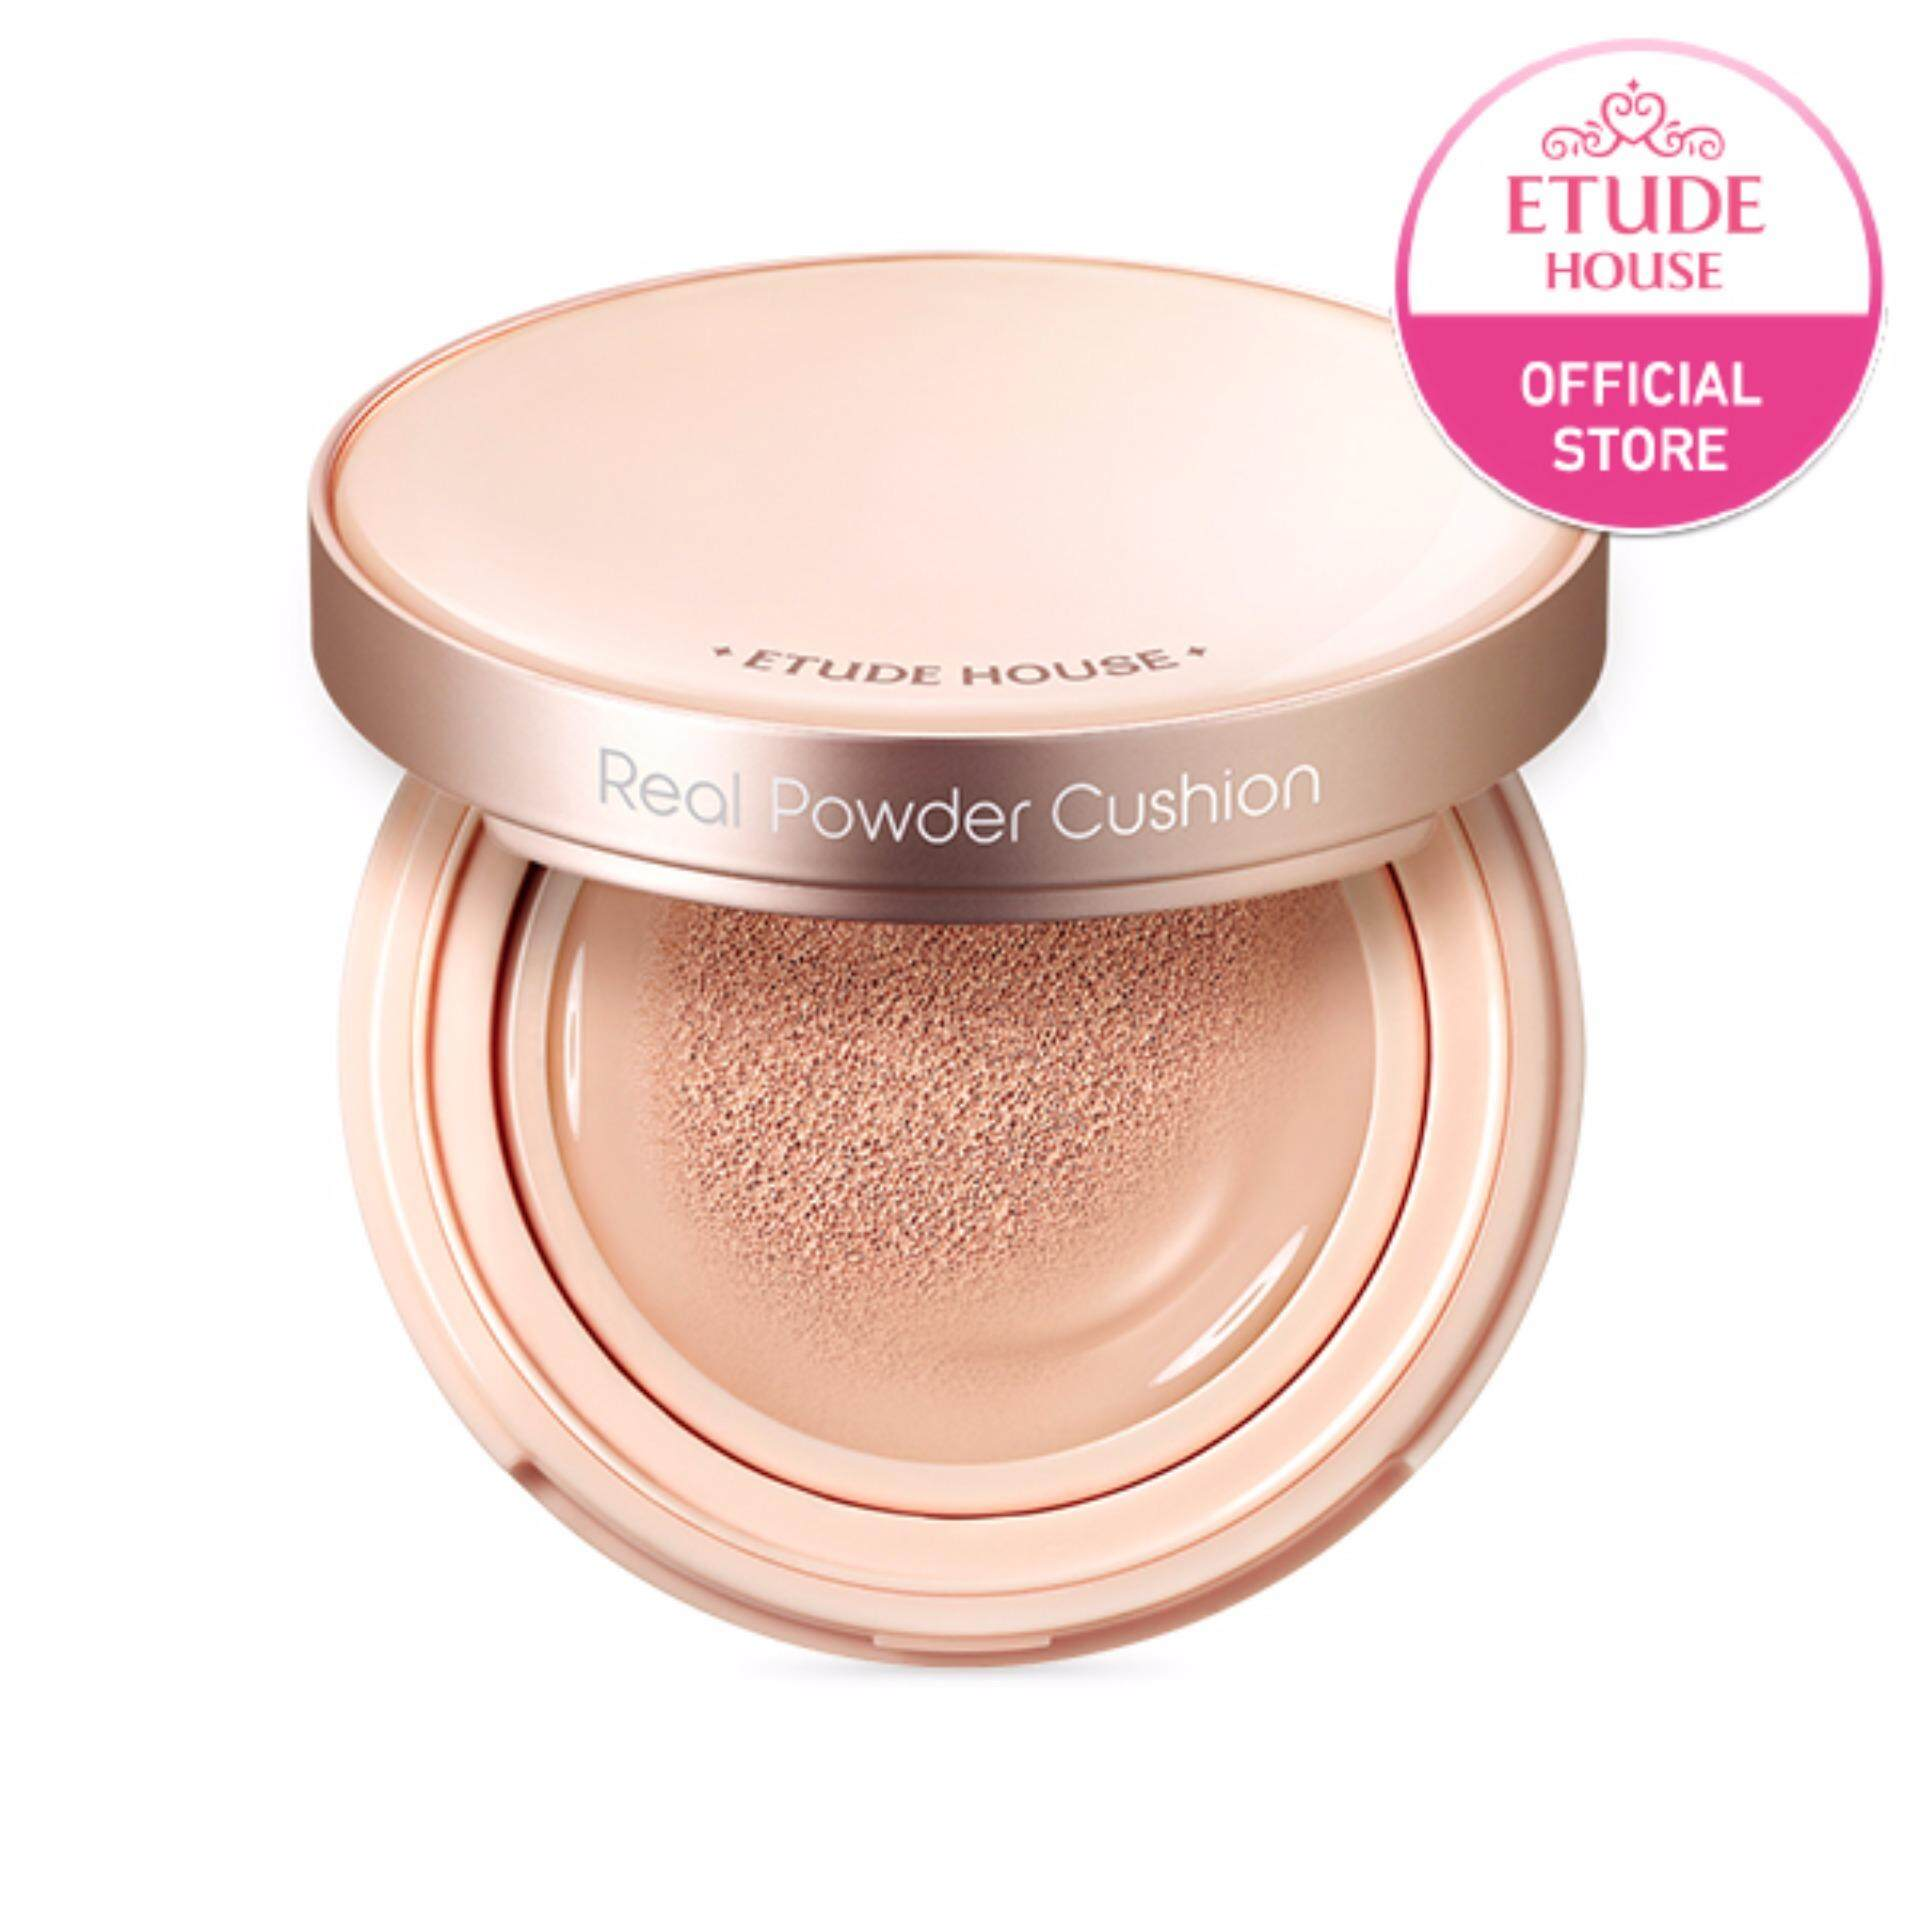 ETUDE HOUSE Real Powder Cushion SPF50+ PA+++ #Honey Beige (14 g) [Last Chance]